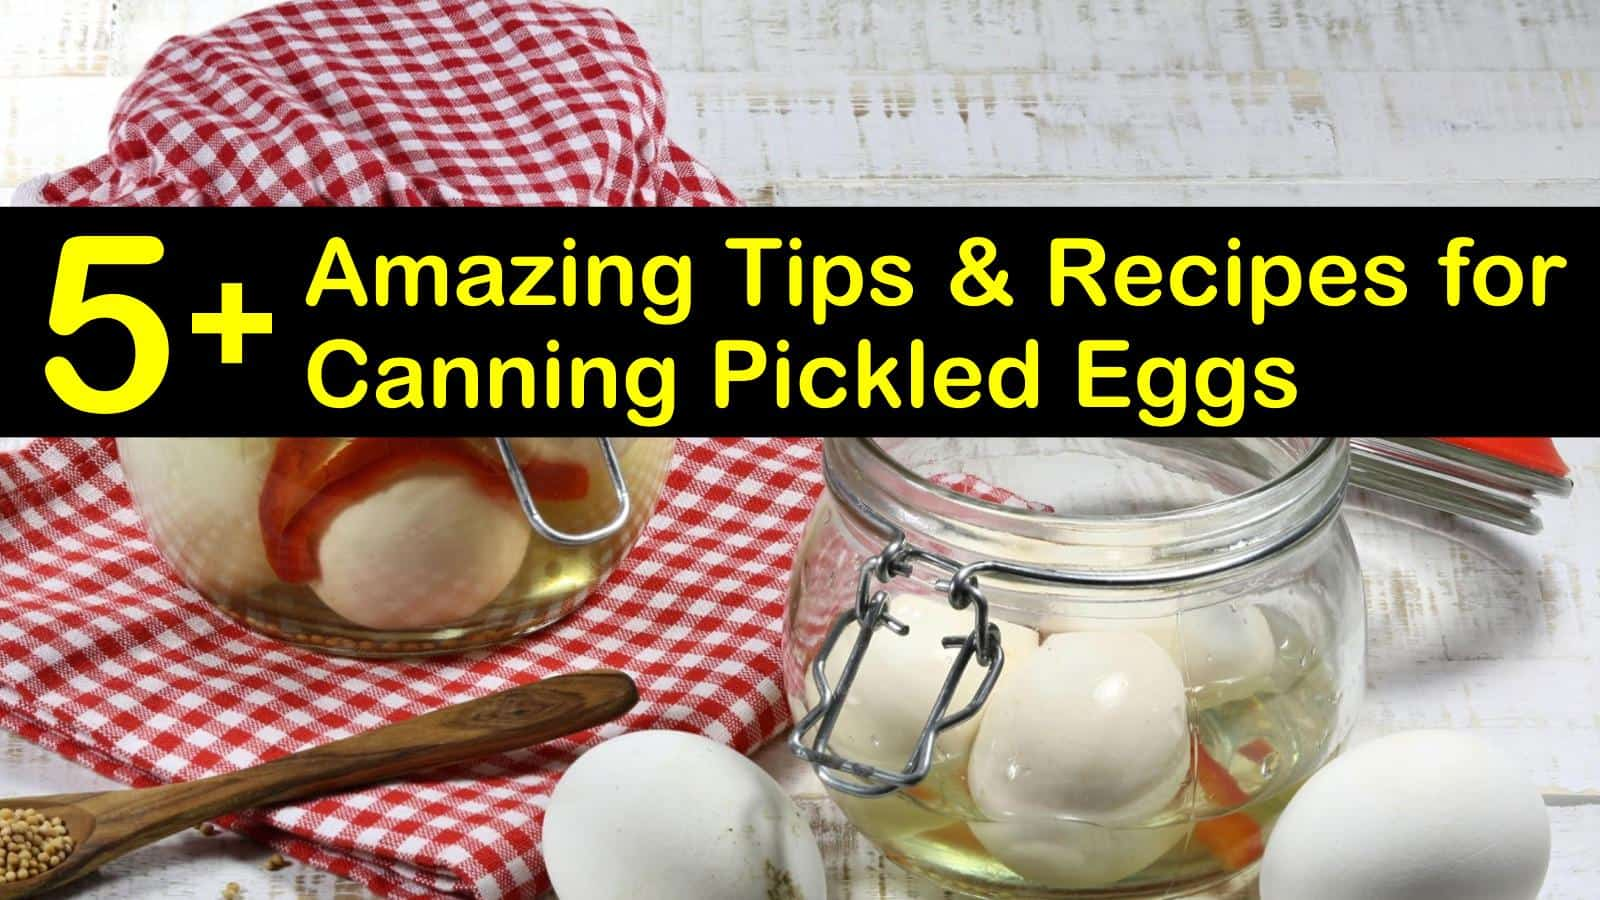 canning pickled eggs titleimg1